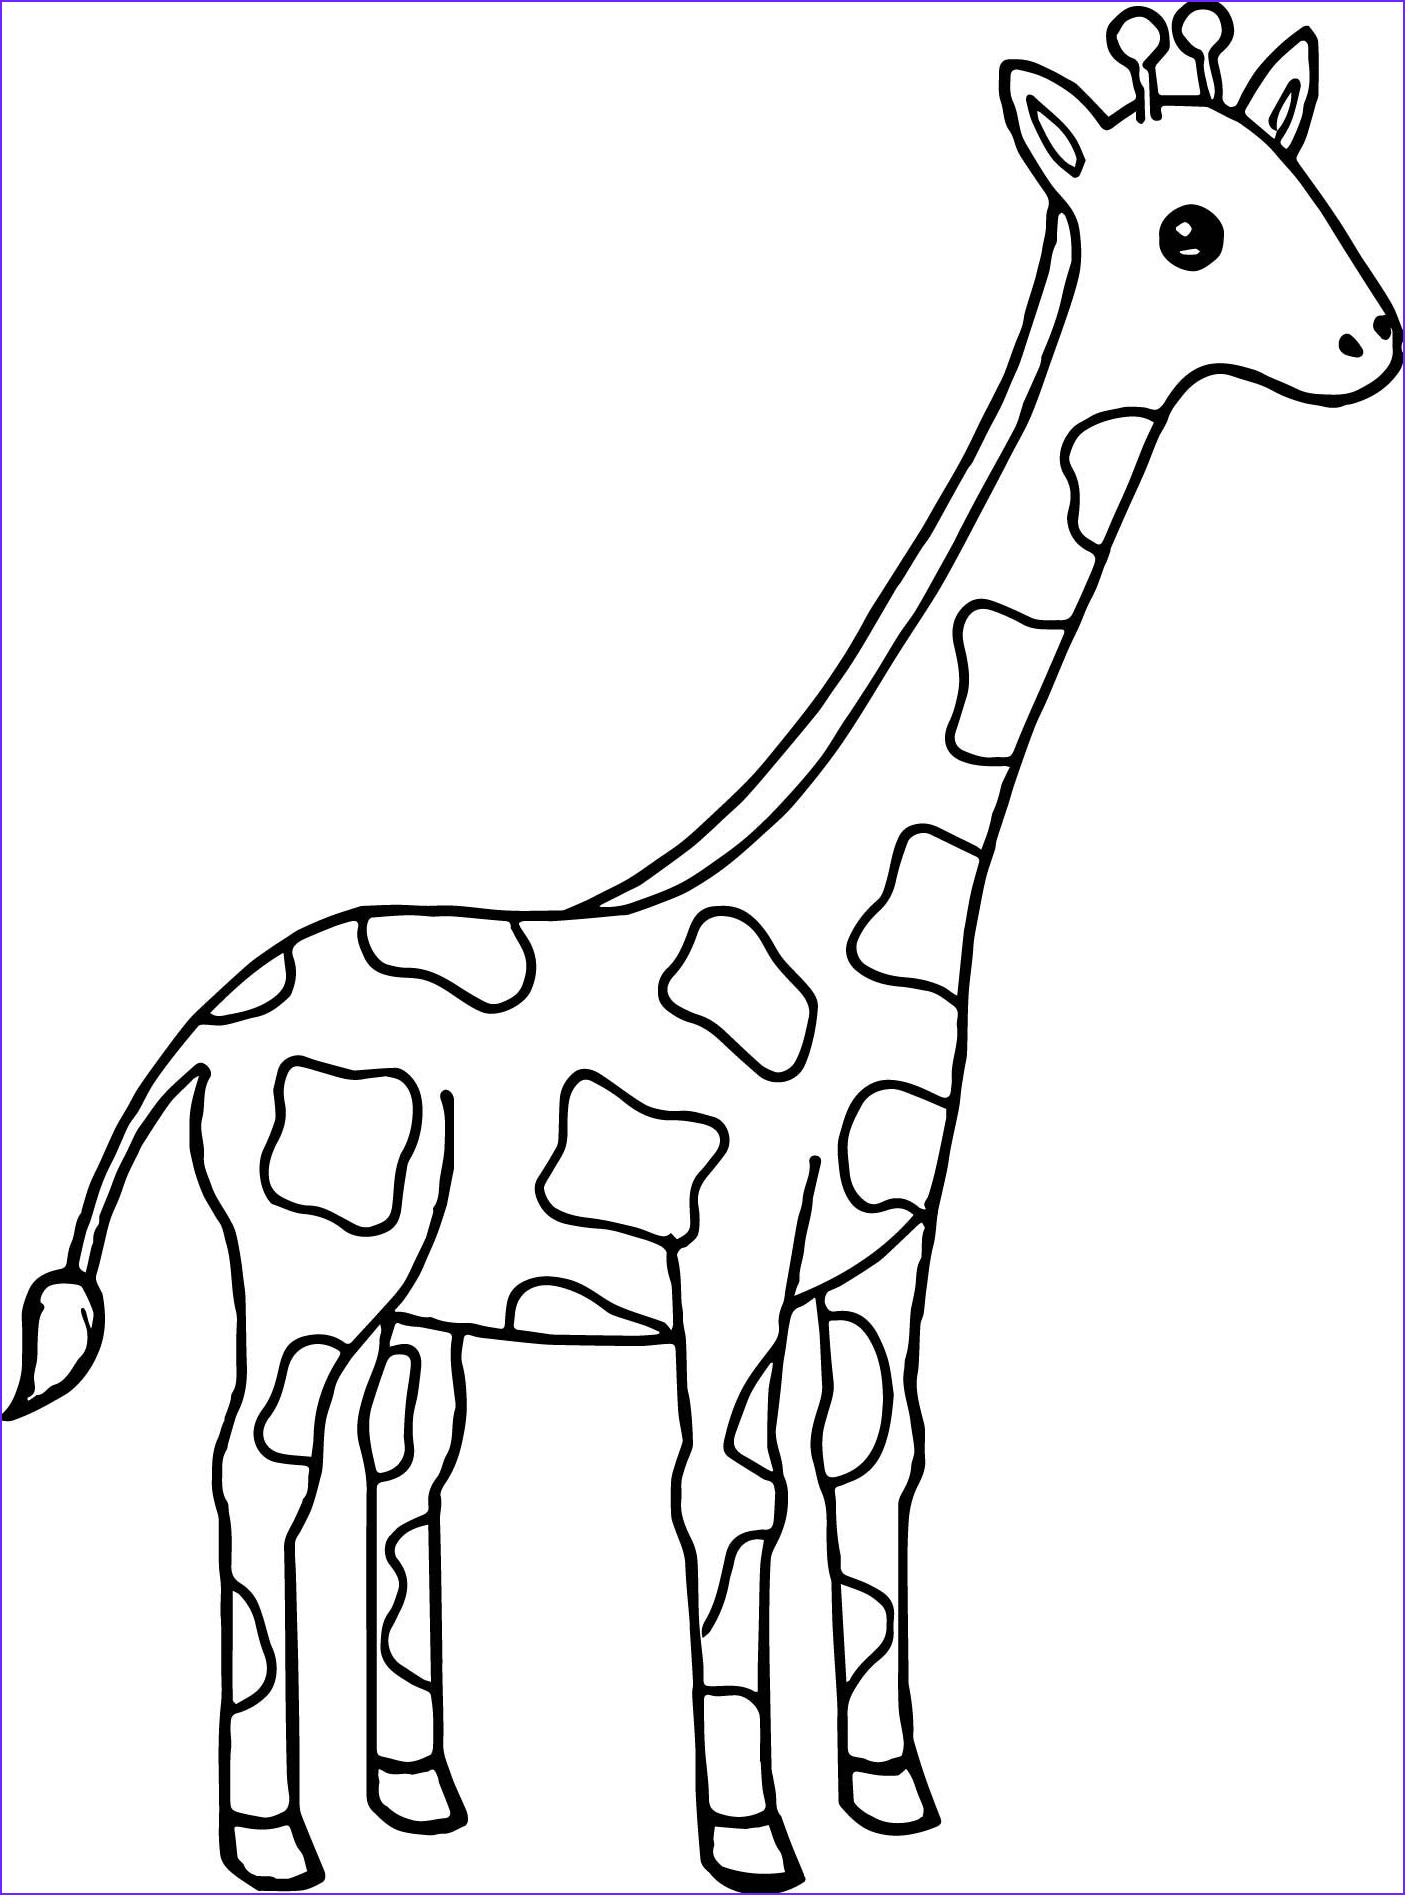 Giraffes Coloring Pages Best Of Images Nice Tall Giraffe Coloring Page Wecoloringpage